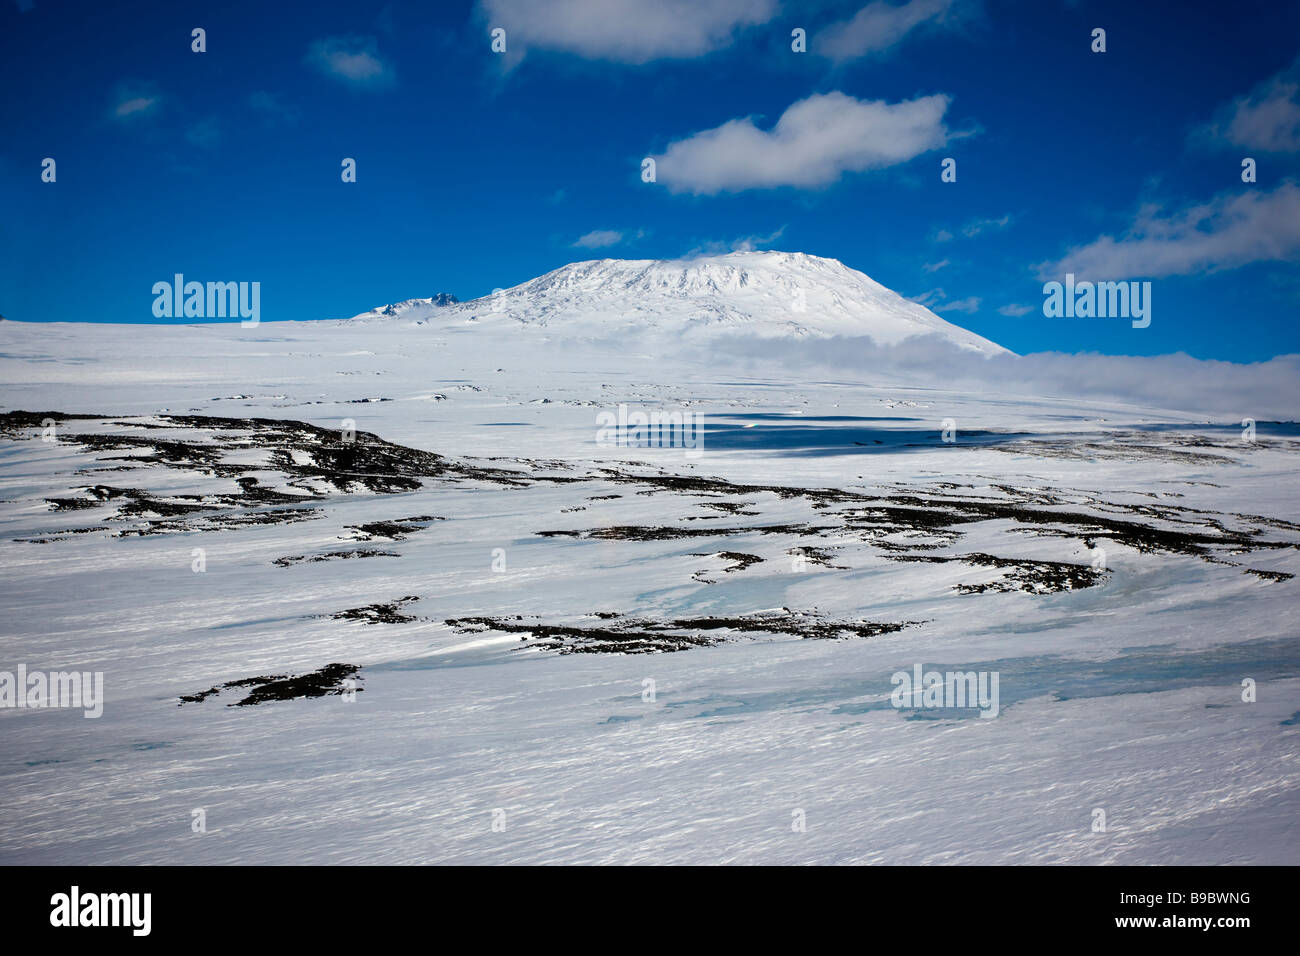 Antarctica Mount Erebus From The Air Aerial Stock Photo